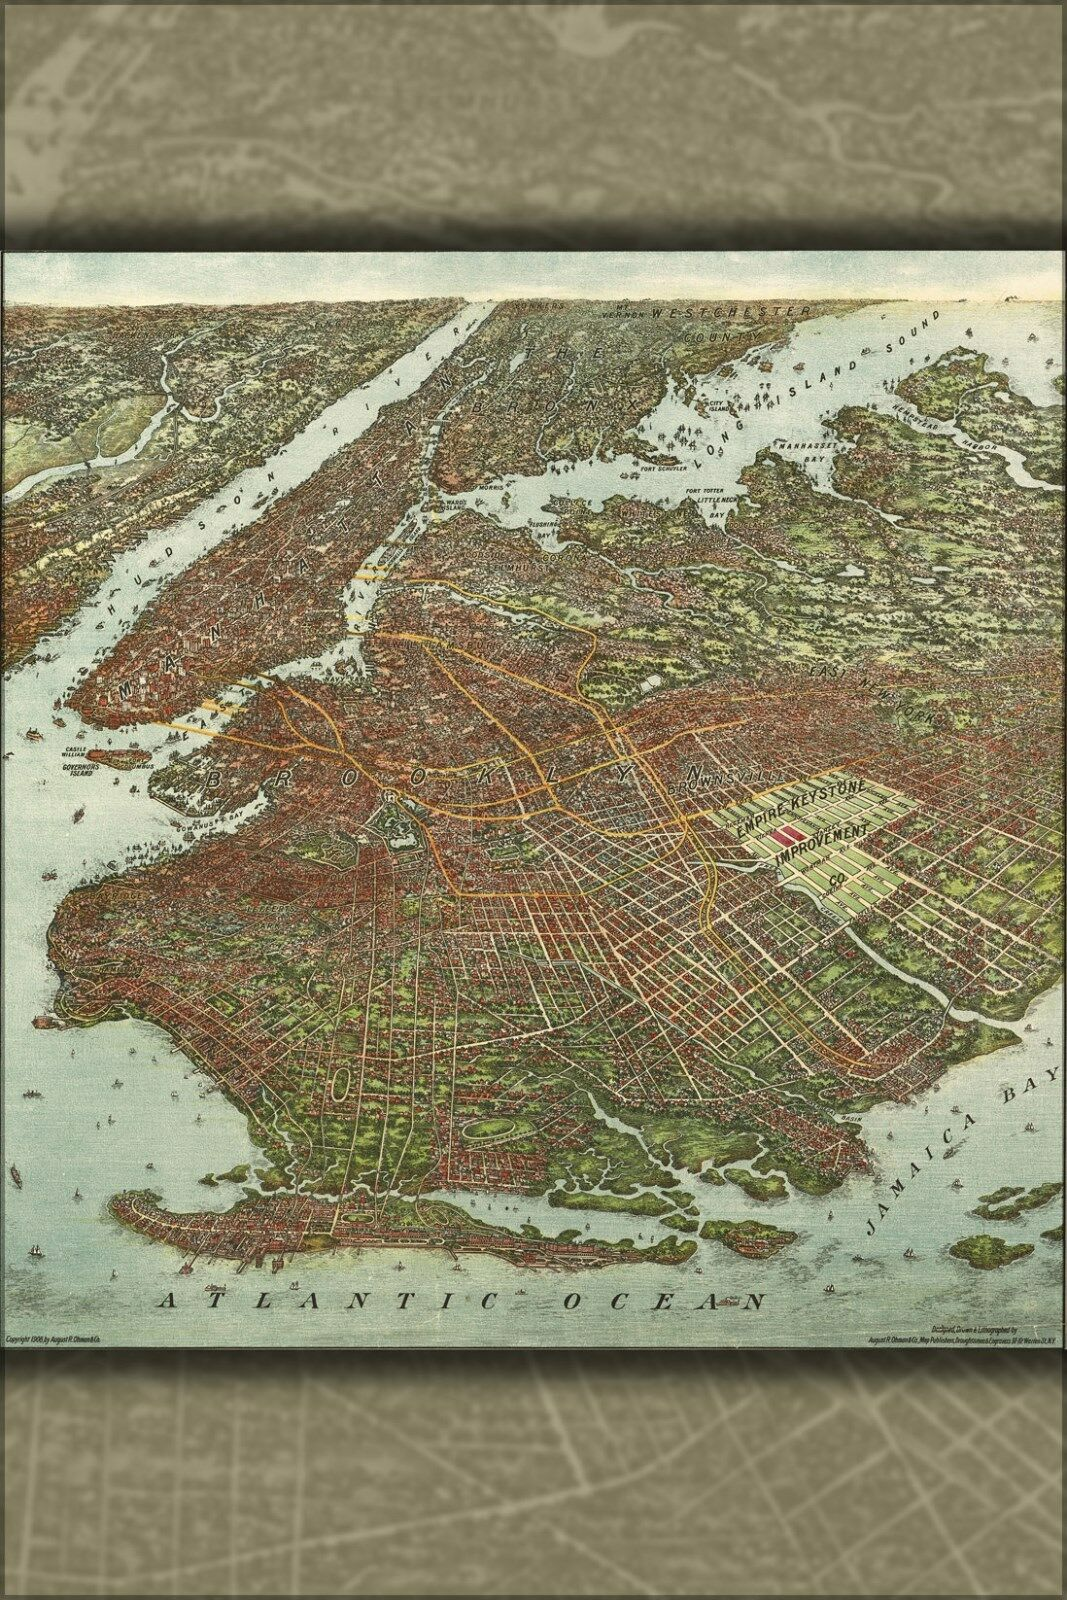 Affiche, Plusieurs Tailles; Carte de de de Brooklyn Ville de New York 1904 | Good Design